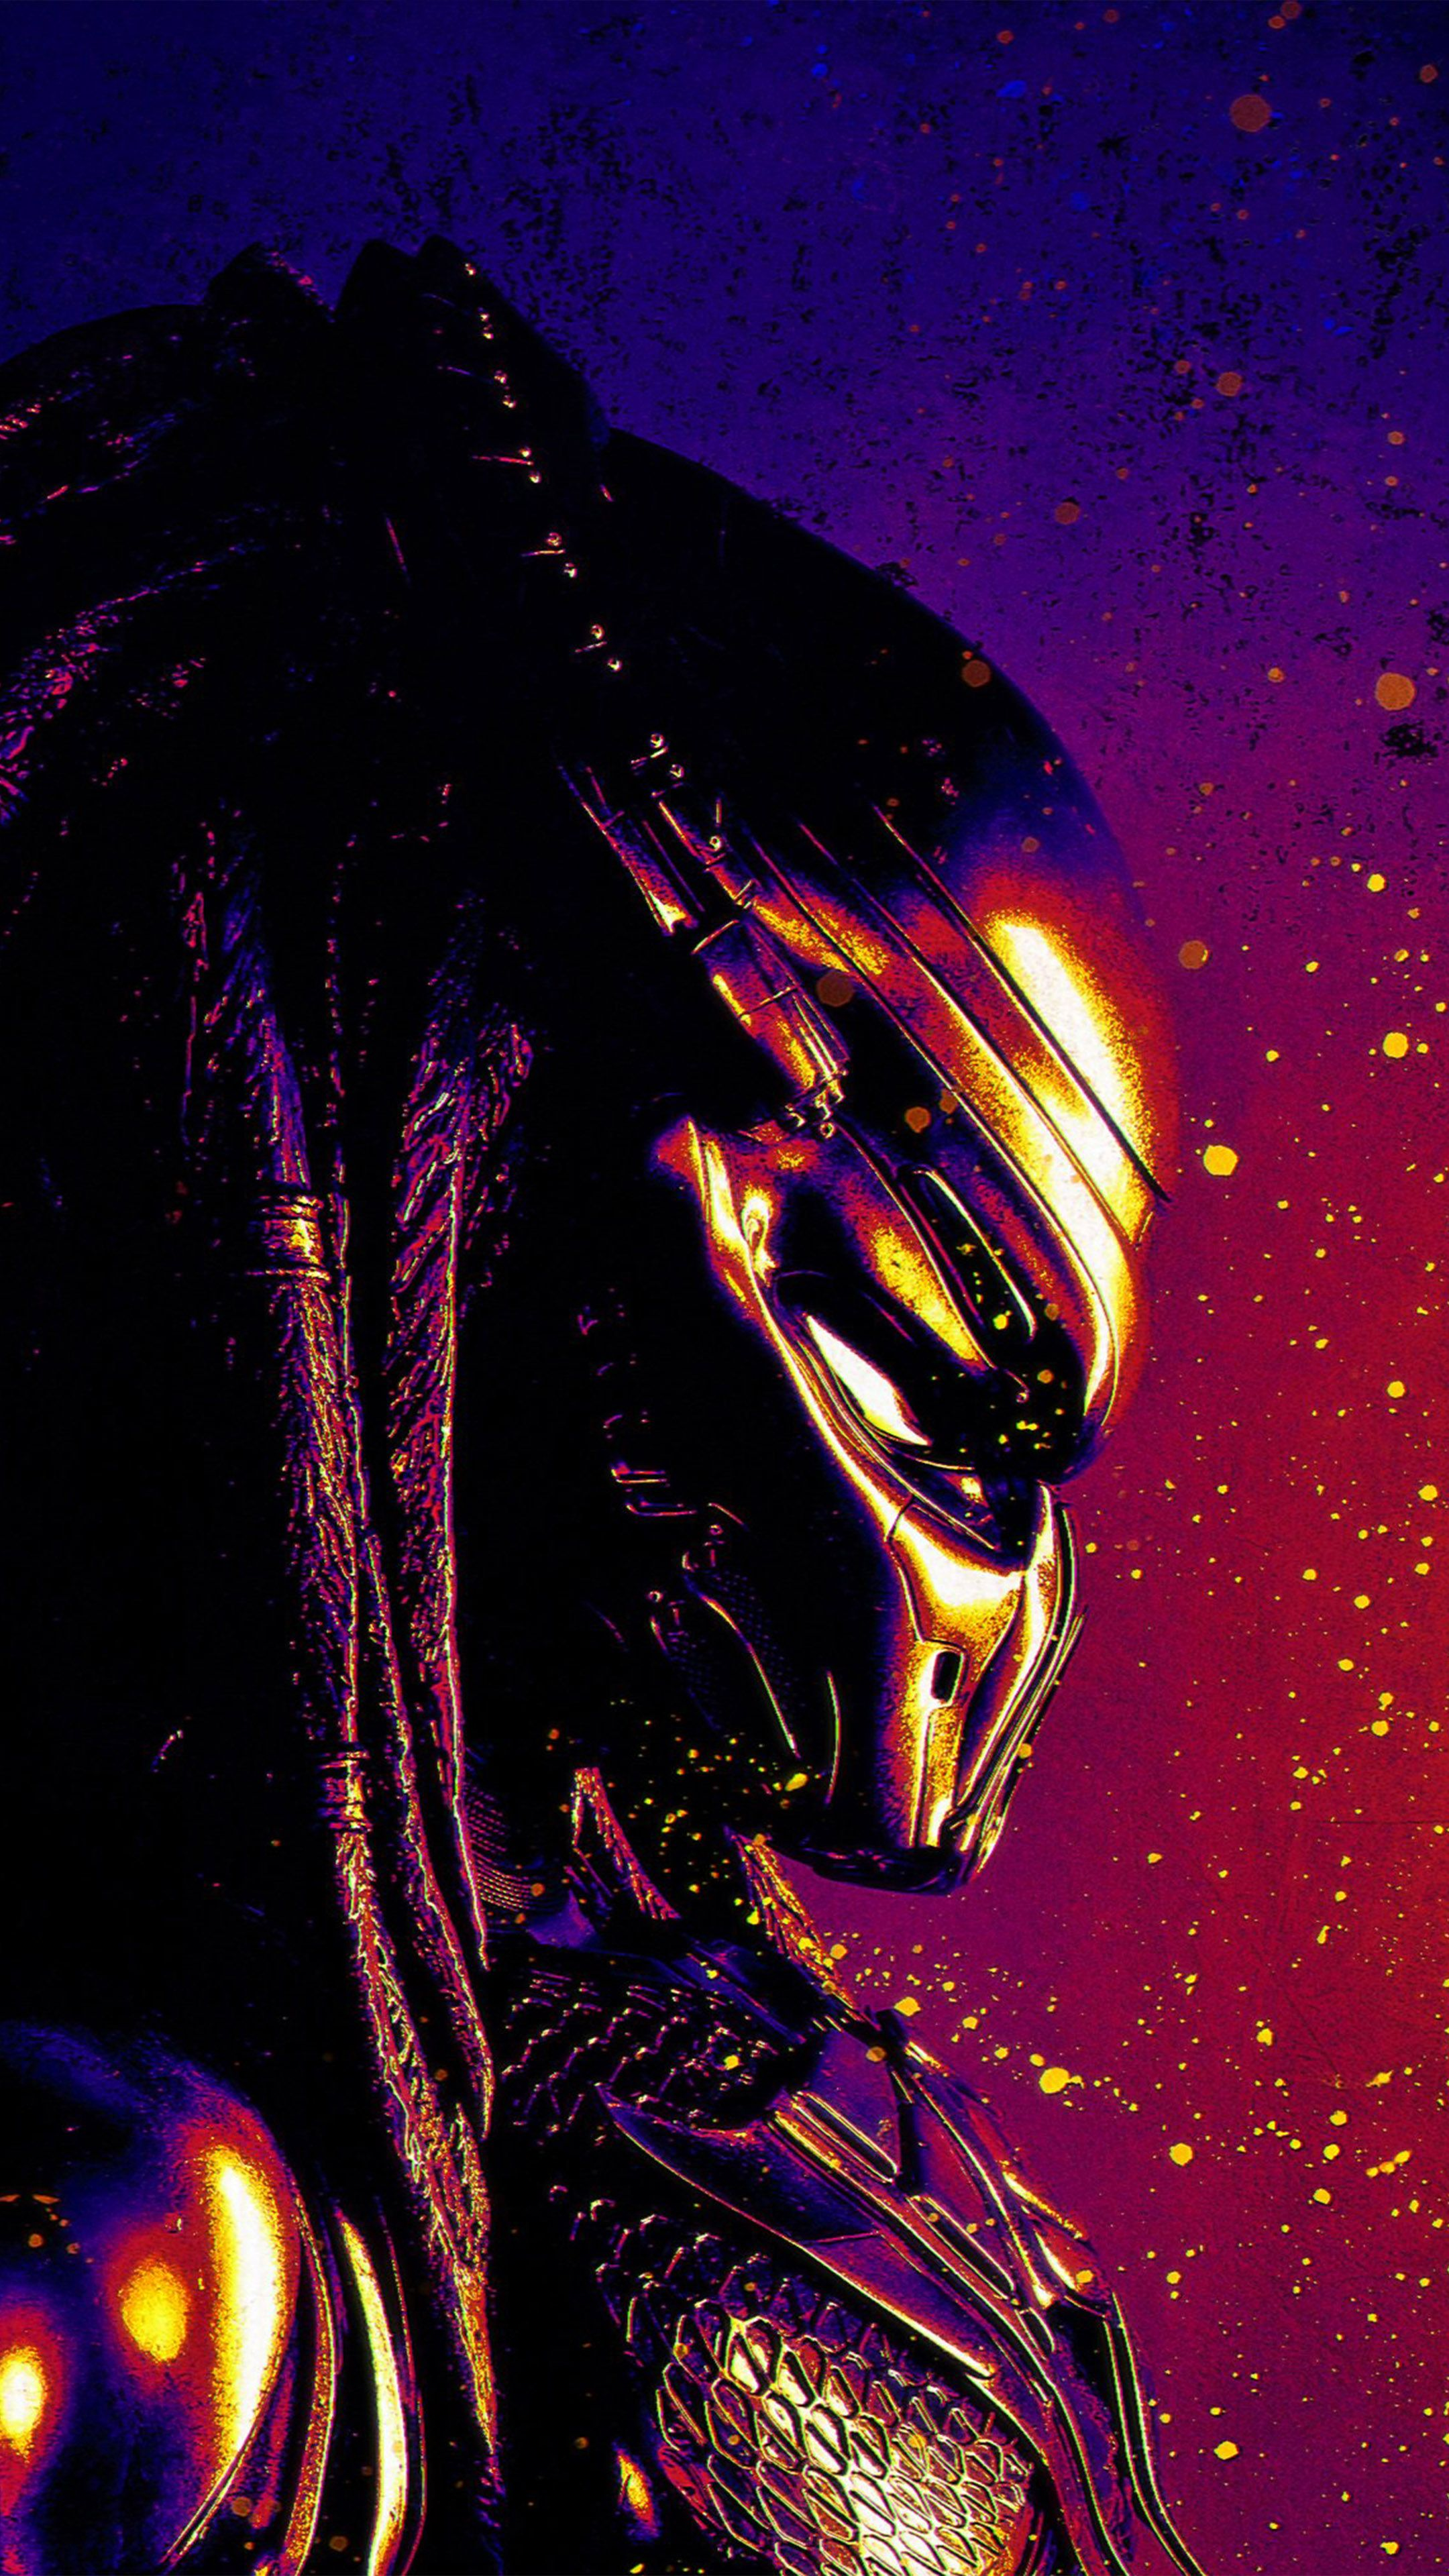 Predator 2018 Artwork Cool wallpapers 4k, Wallpapers for